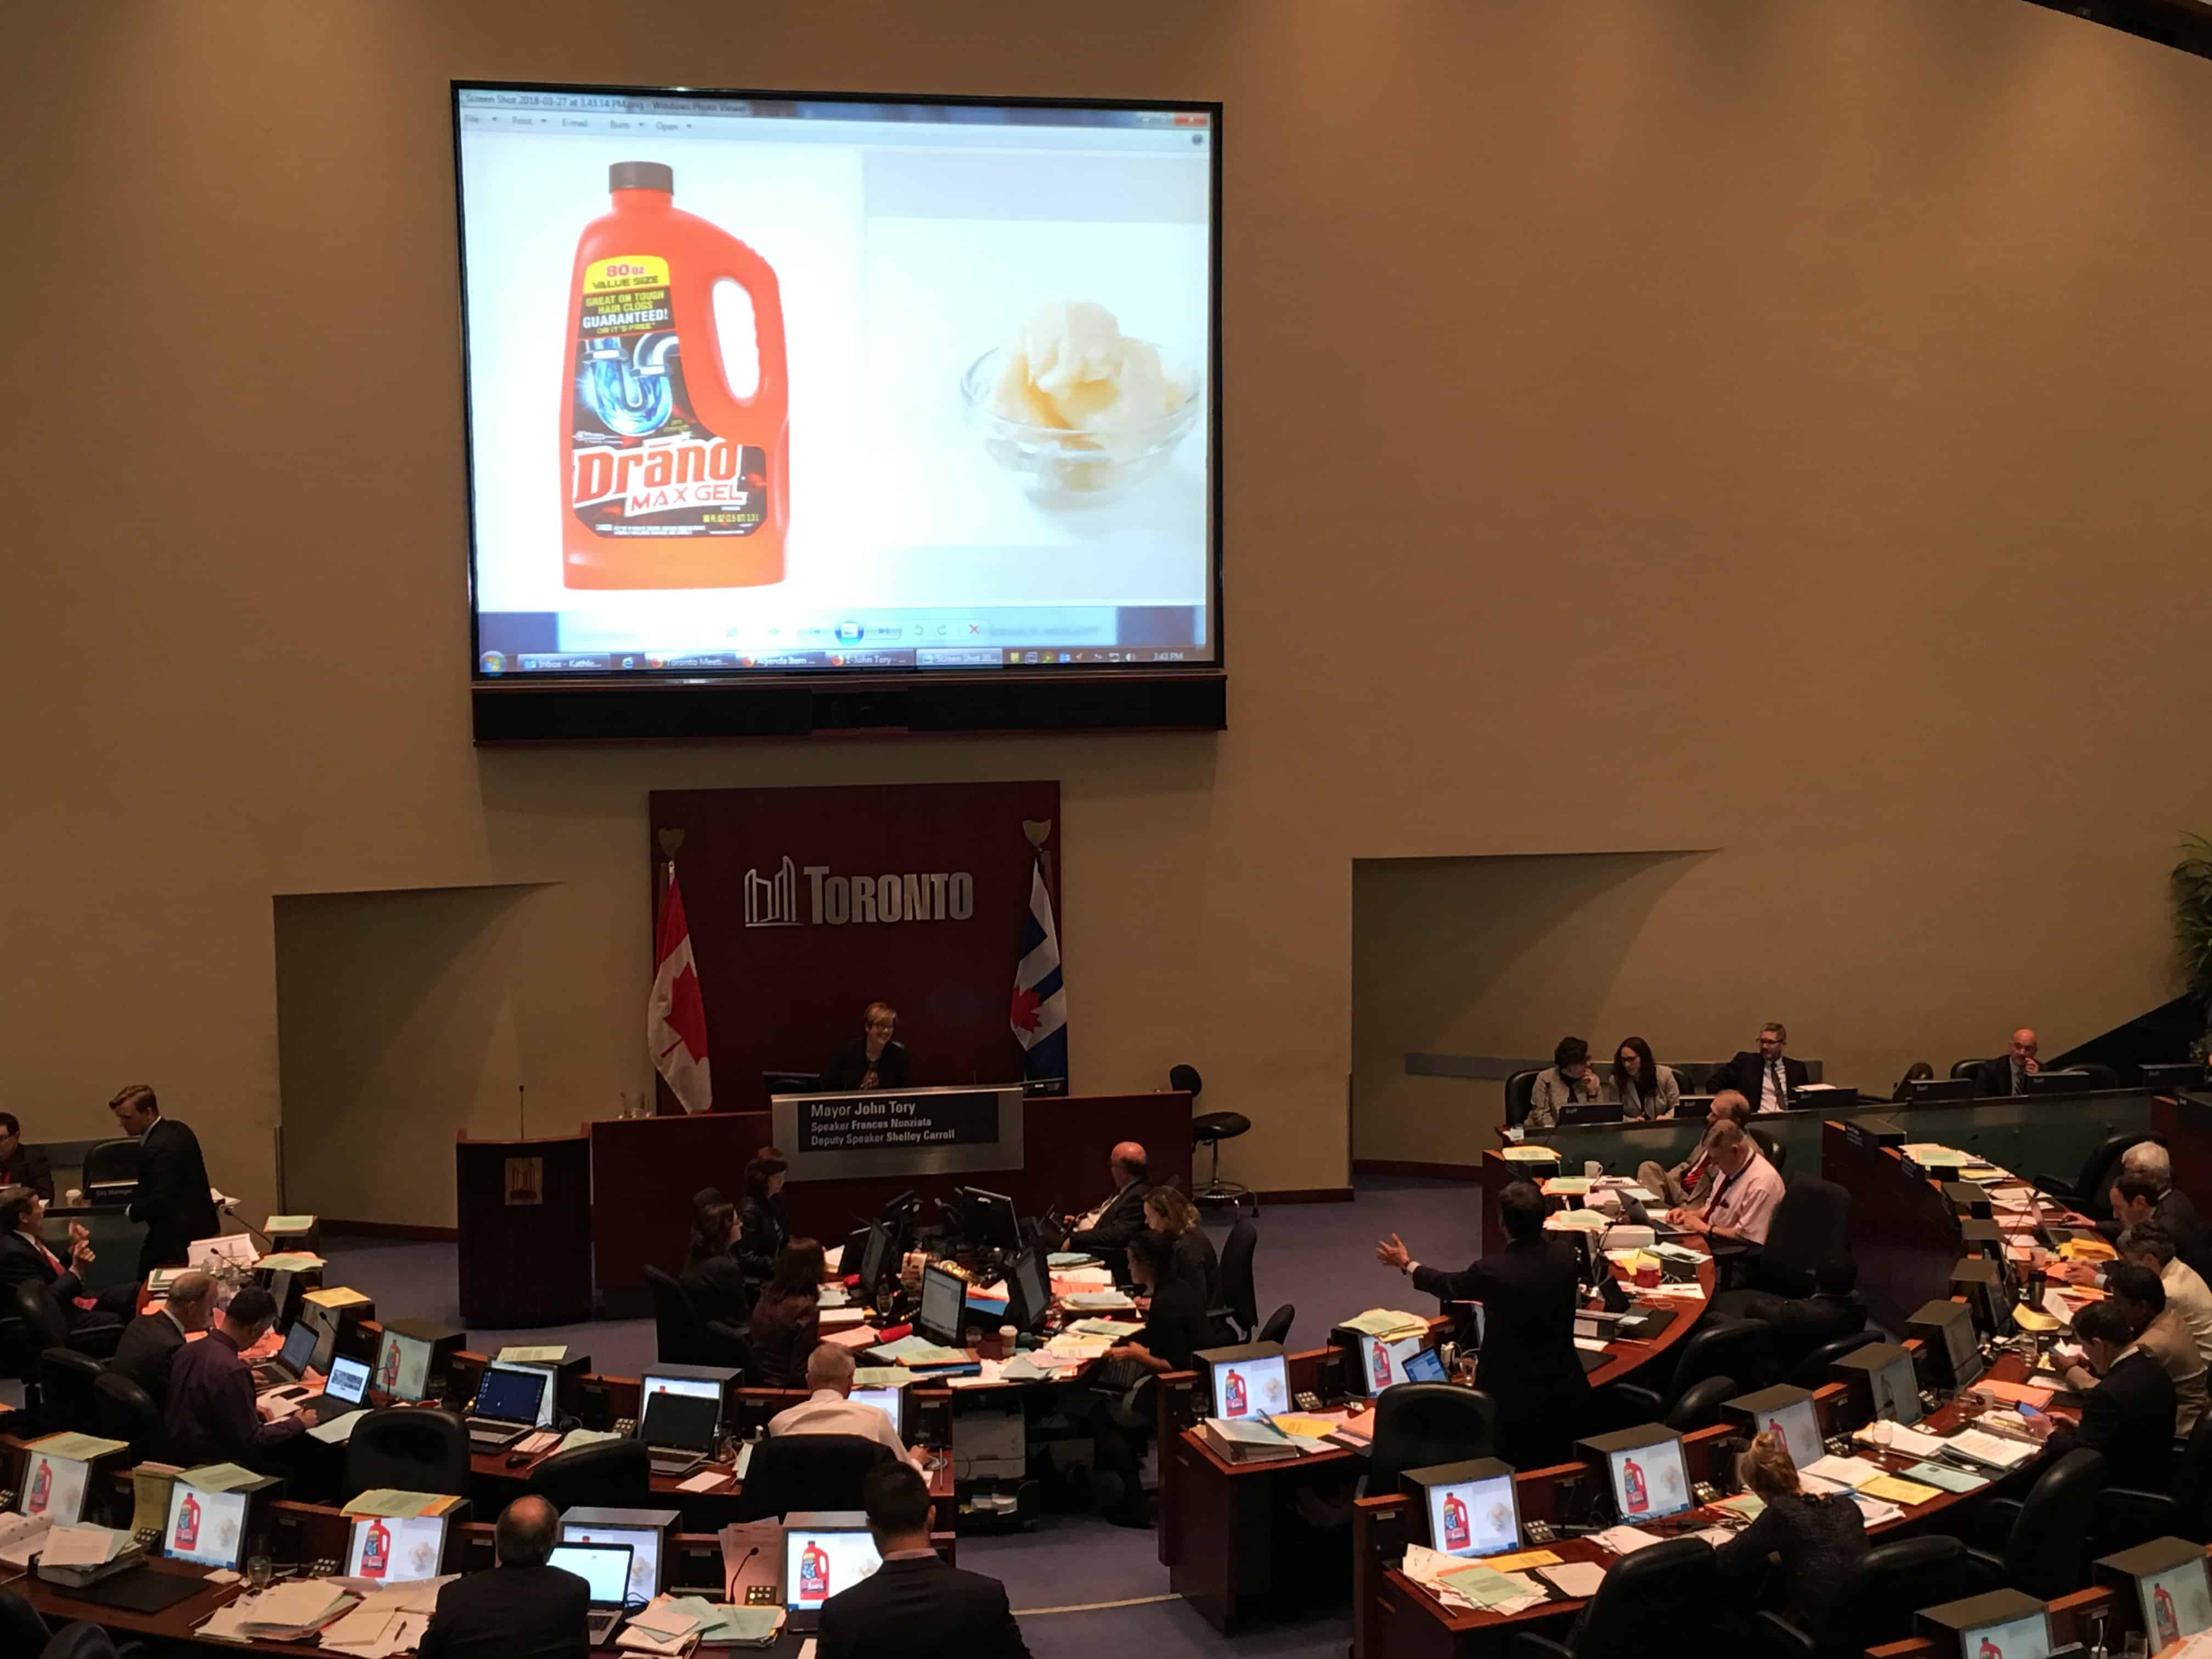 3:43 p.m., March 27, 2018. Deputy Mayor Denzil Minnan-Wong illustrates the decision council has to make for Yonge Street using images of Drano and lard.